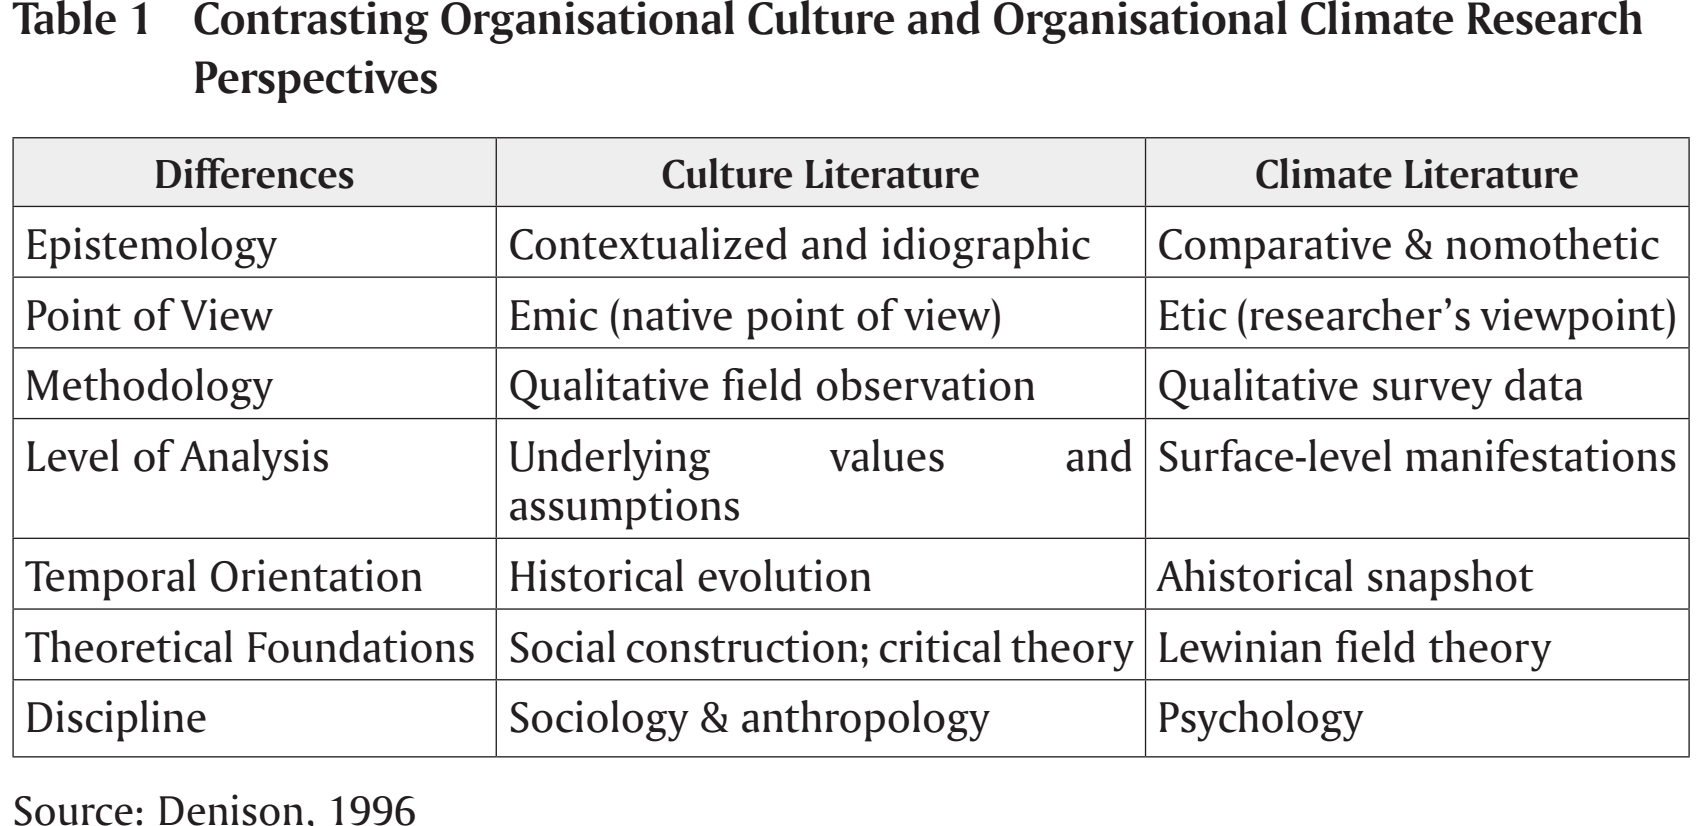 organizational climate Organizational climate and culture [benjamin schneider] on amazoncom free shipping on qualifying offers sponsored by the society for industrial and organizationalpsychology, a division of the american psychological association.